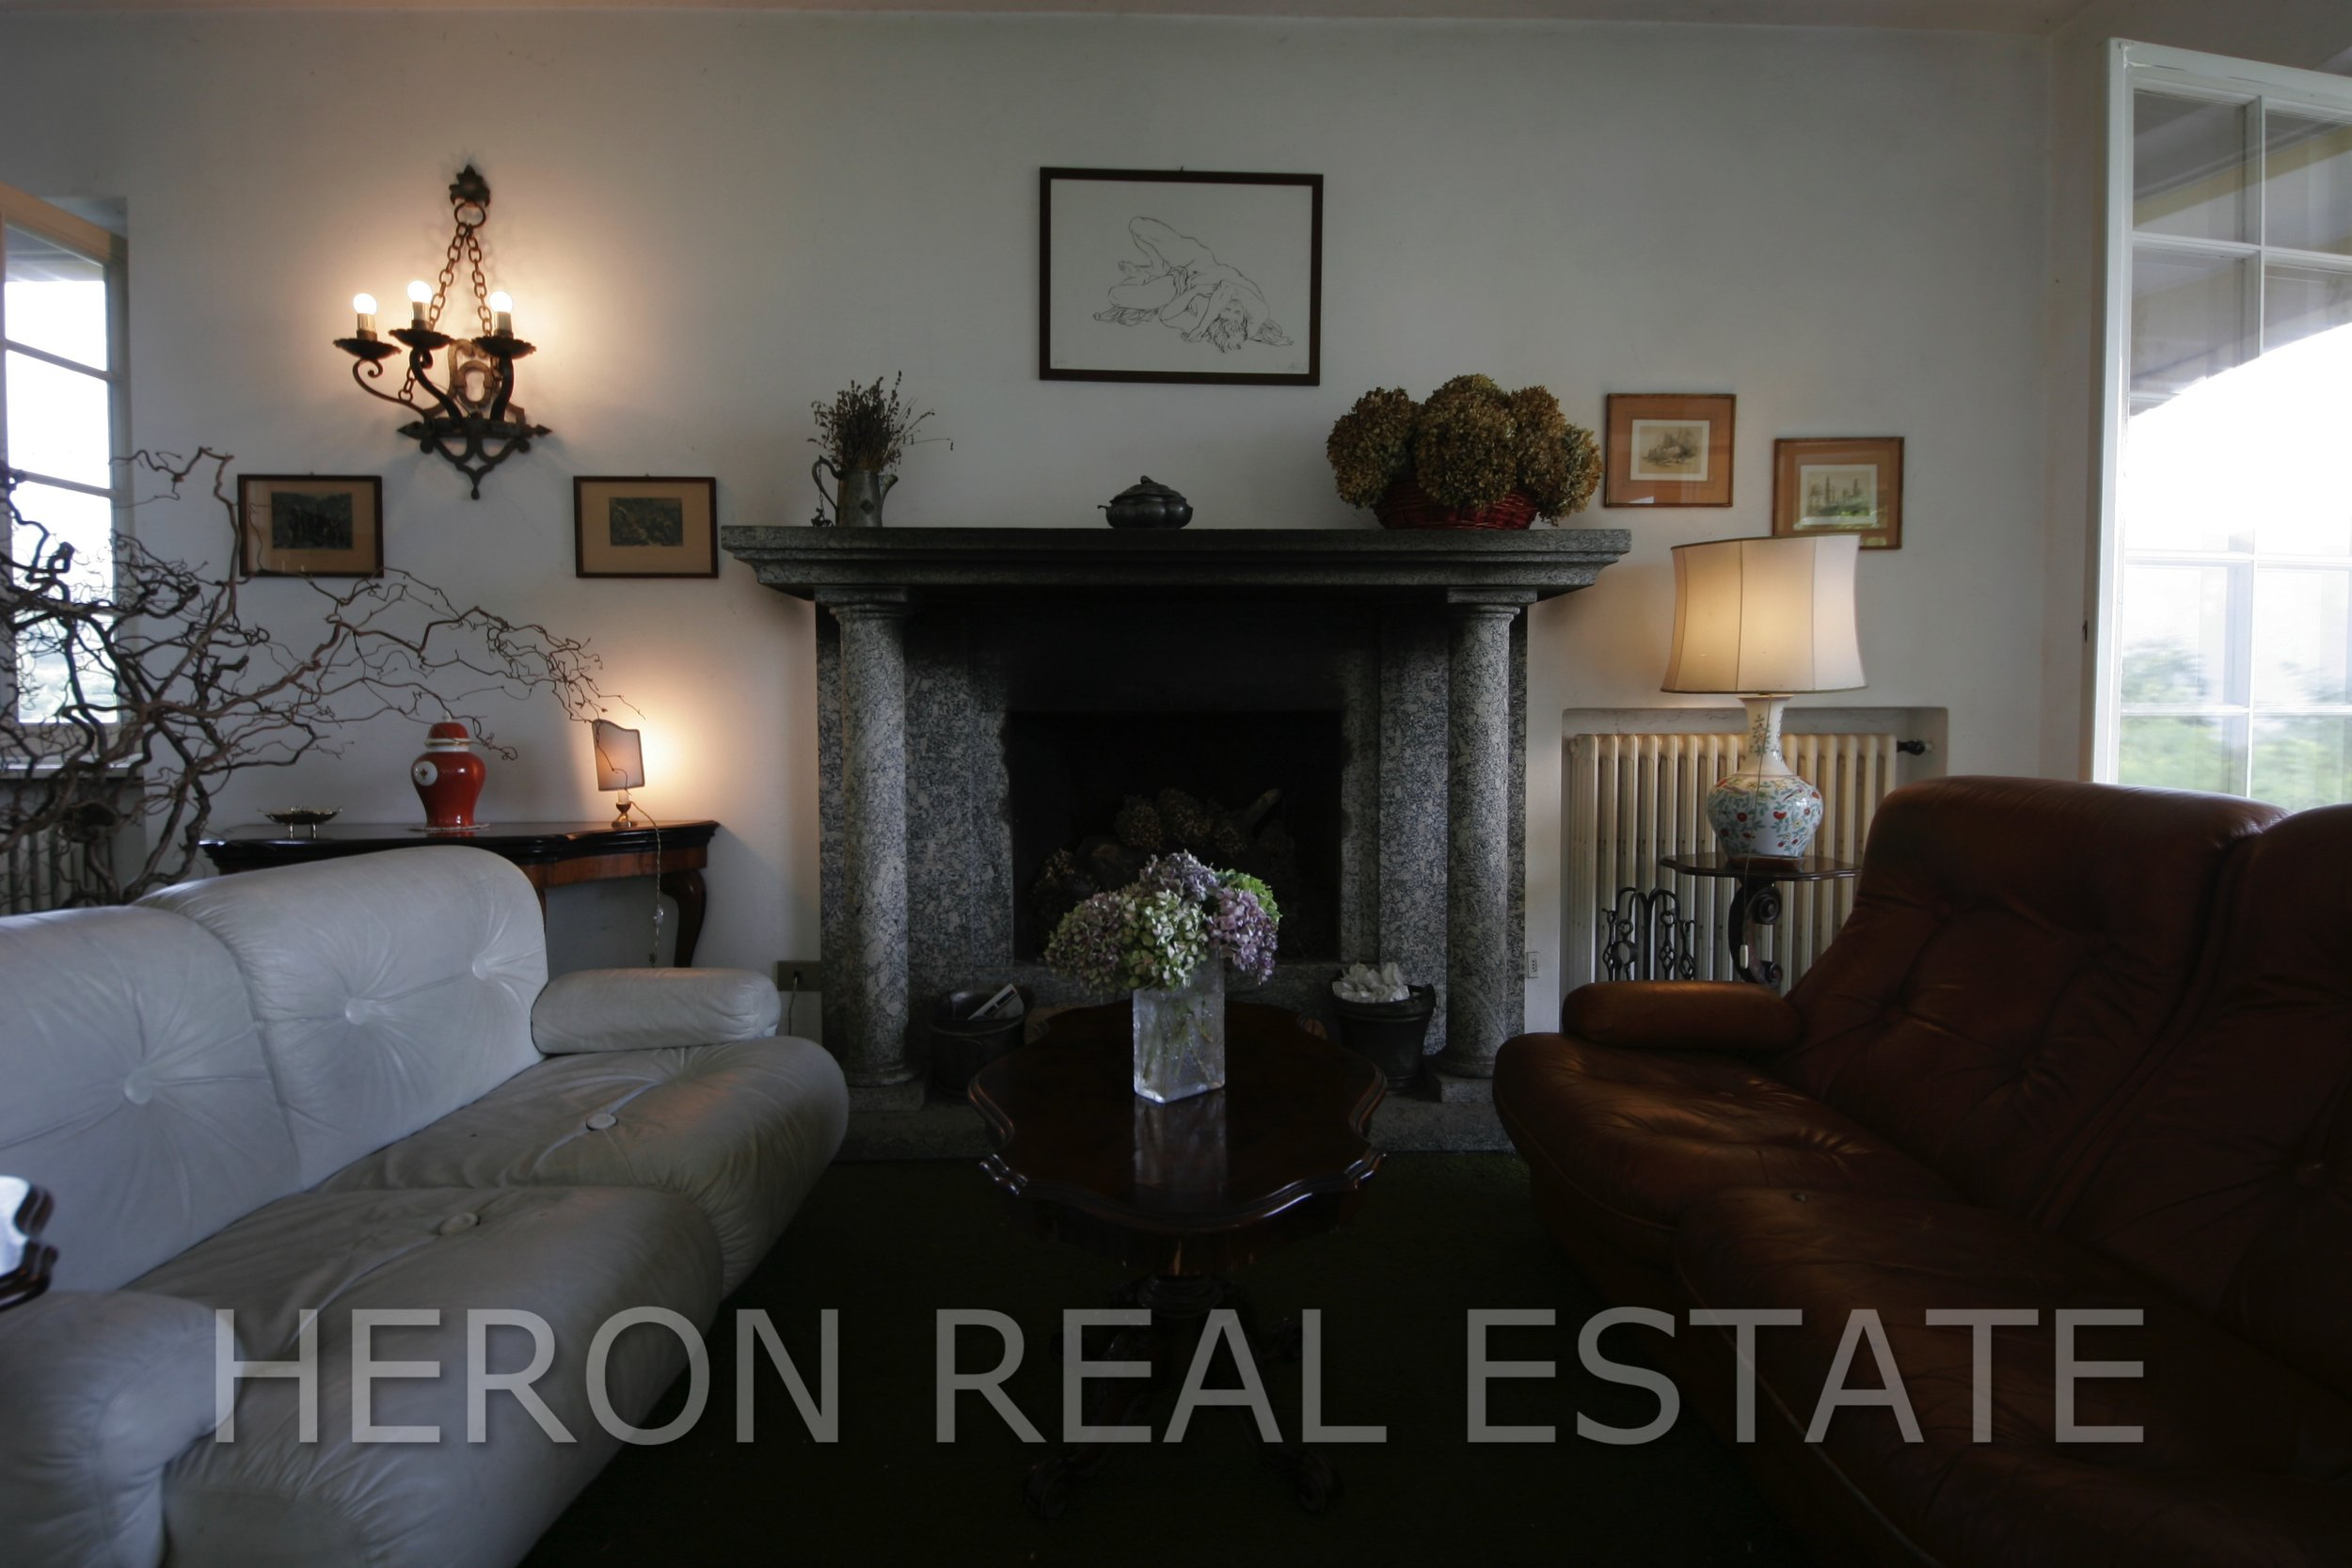 4 living room with fireplace.jpg